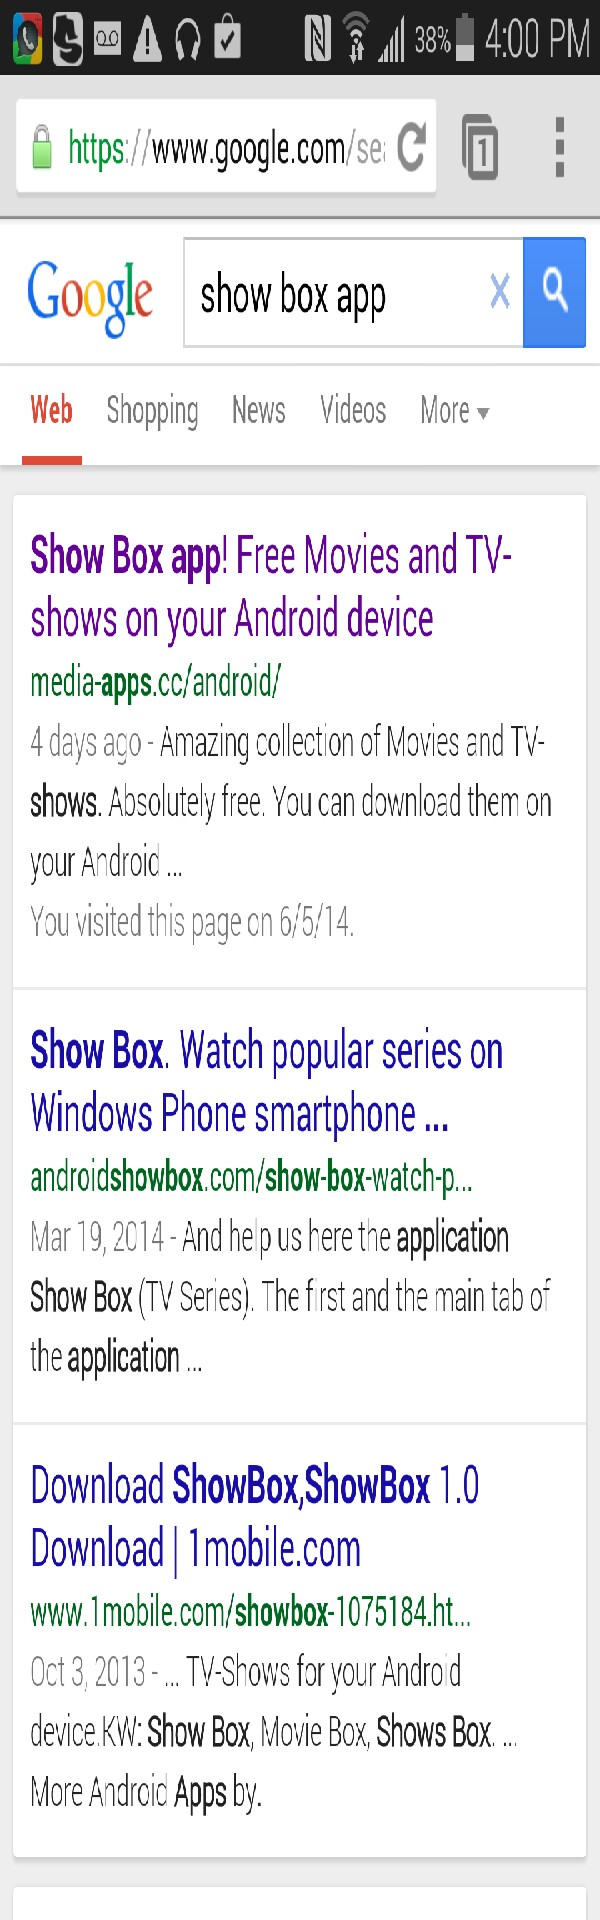 go to google and type in showbox app